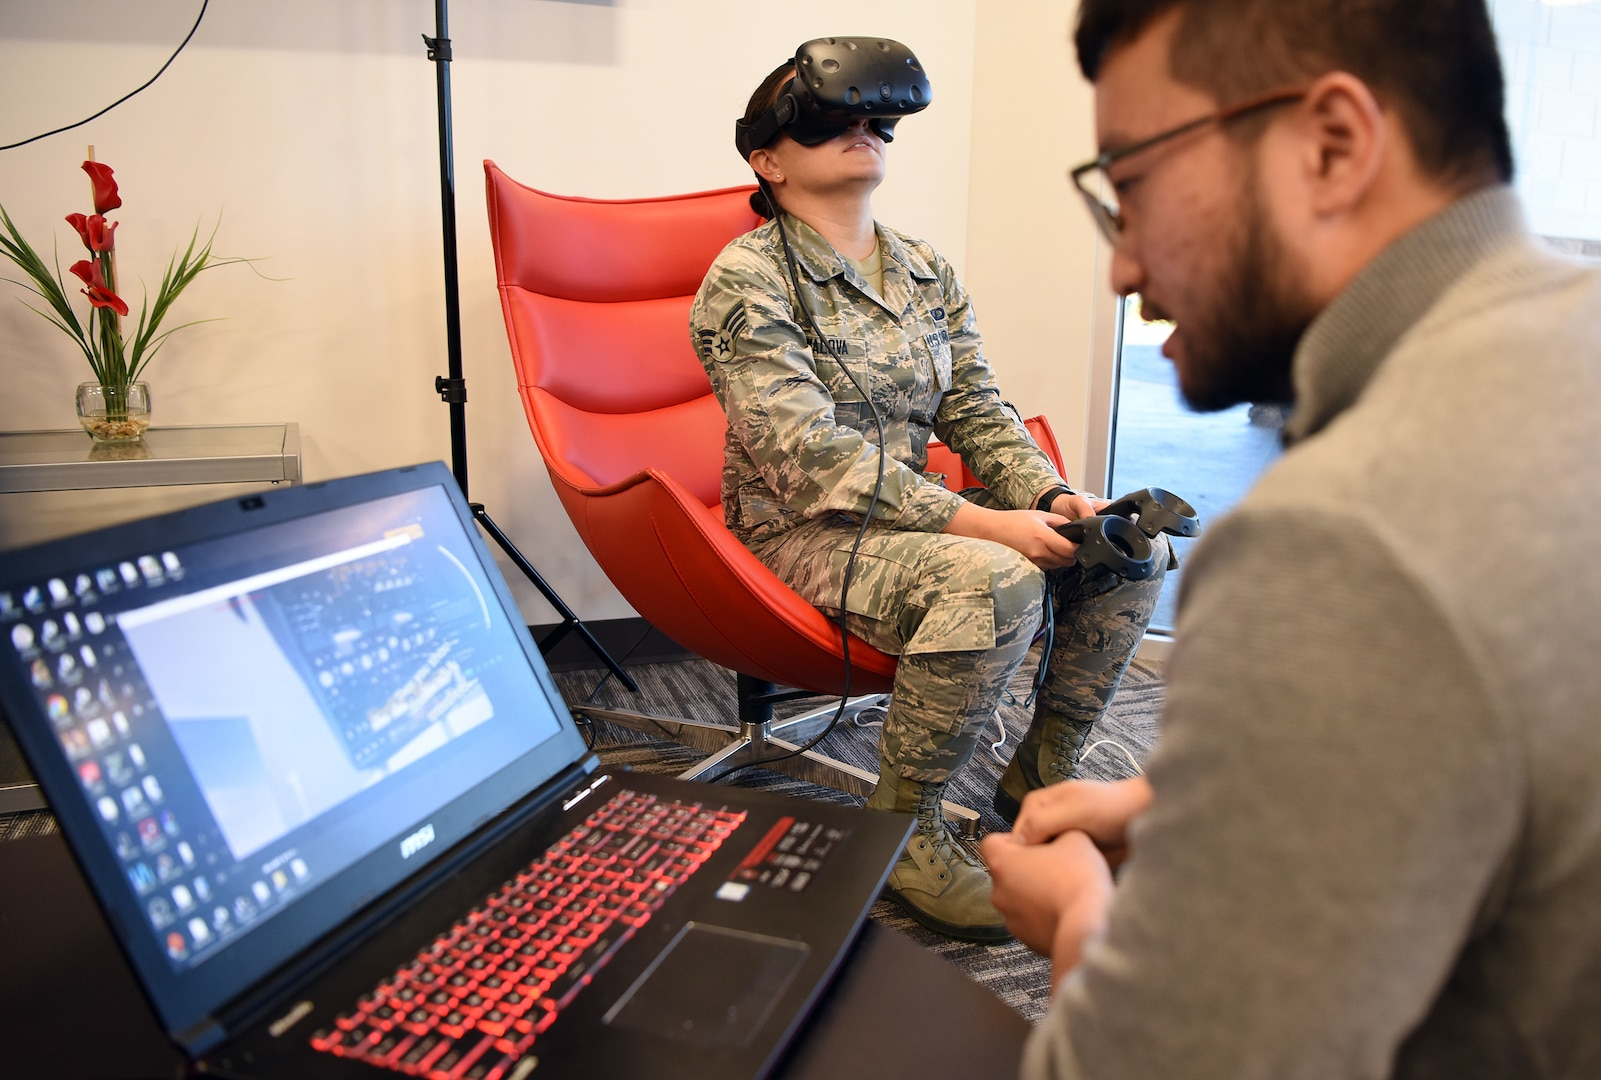 Senior Airman Alzara Kimalova, Air Force Sustainment Center contract specialist, is walked through power-off procedures for C-130H aircraft through virtual reality technology at the Inaugural Pitch Day hosted by the Robins Spark Cell and AFSC Contracting located at Robins Air Force Base, Sept. 20, 2019, at the Advanced Technology and Training Center in Warner Robins, Georgia. The event is an initial prototype effort to assess the capabilities of current commercially available virtual reality training systems when used in a military environment, particularly within the 461st and 116th Air Control Wings at Robins.